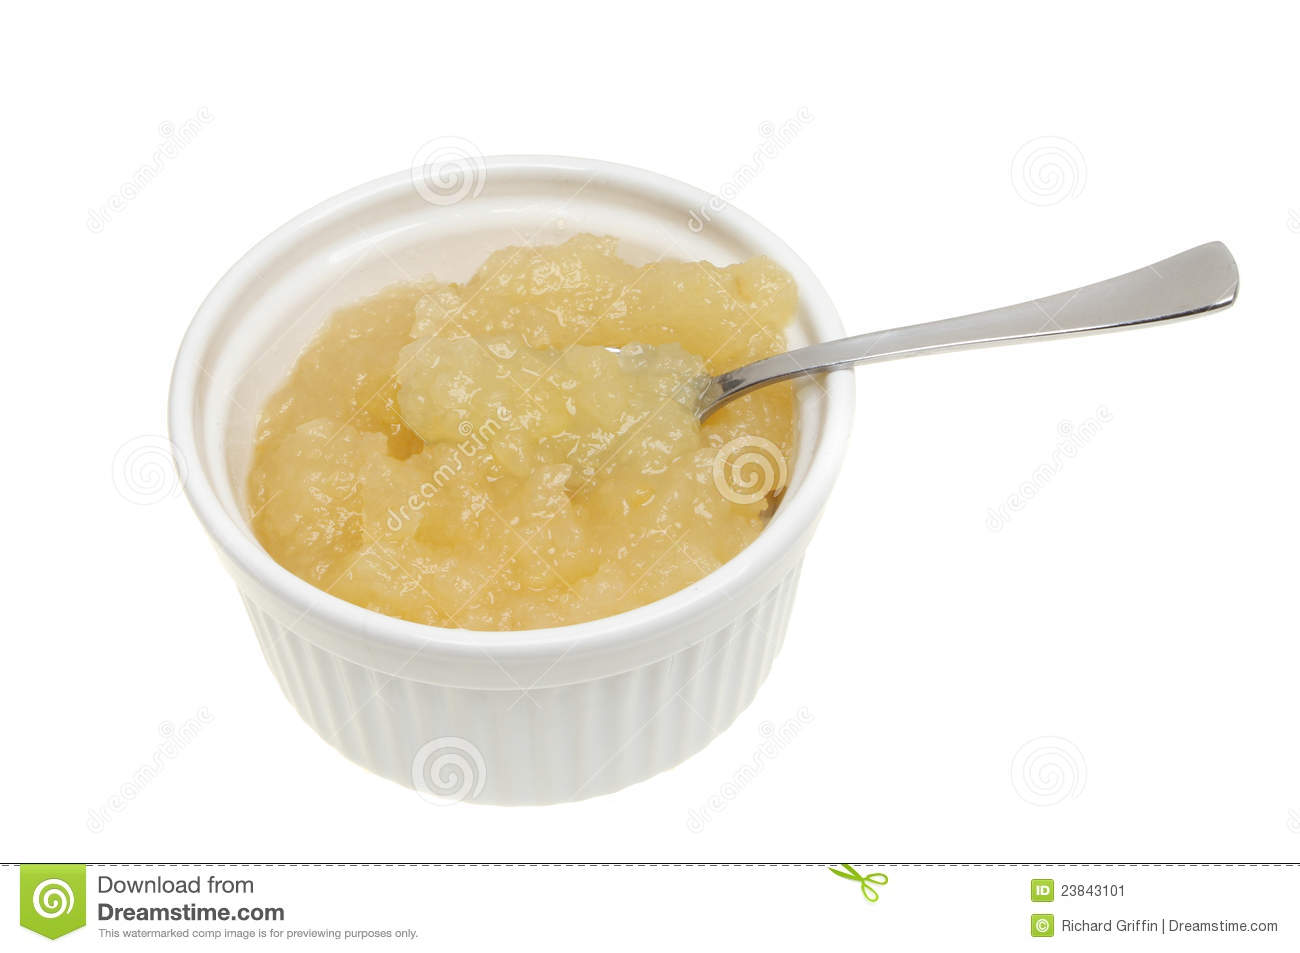 Apple sauce with a spoon in a ramekin isolated against white.